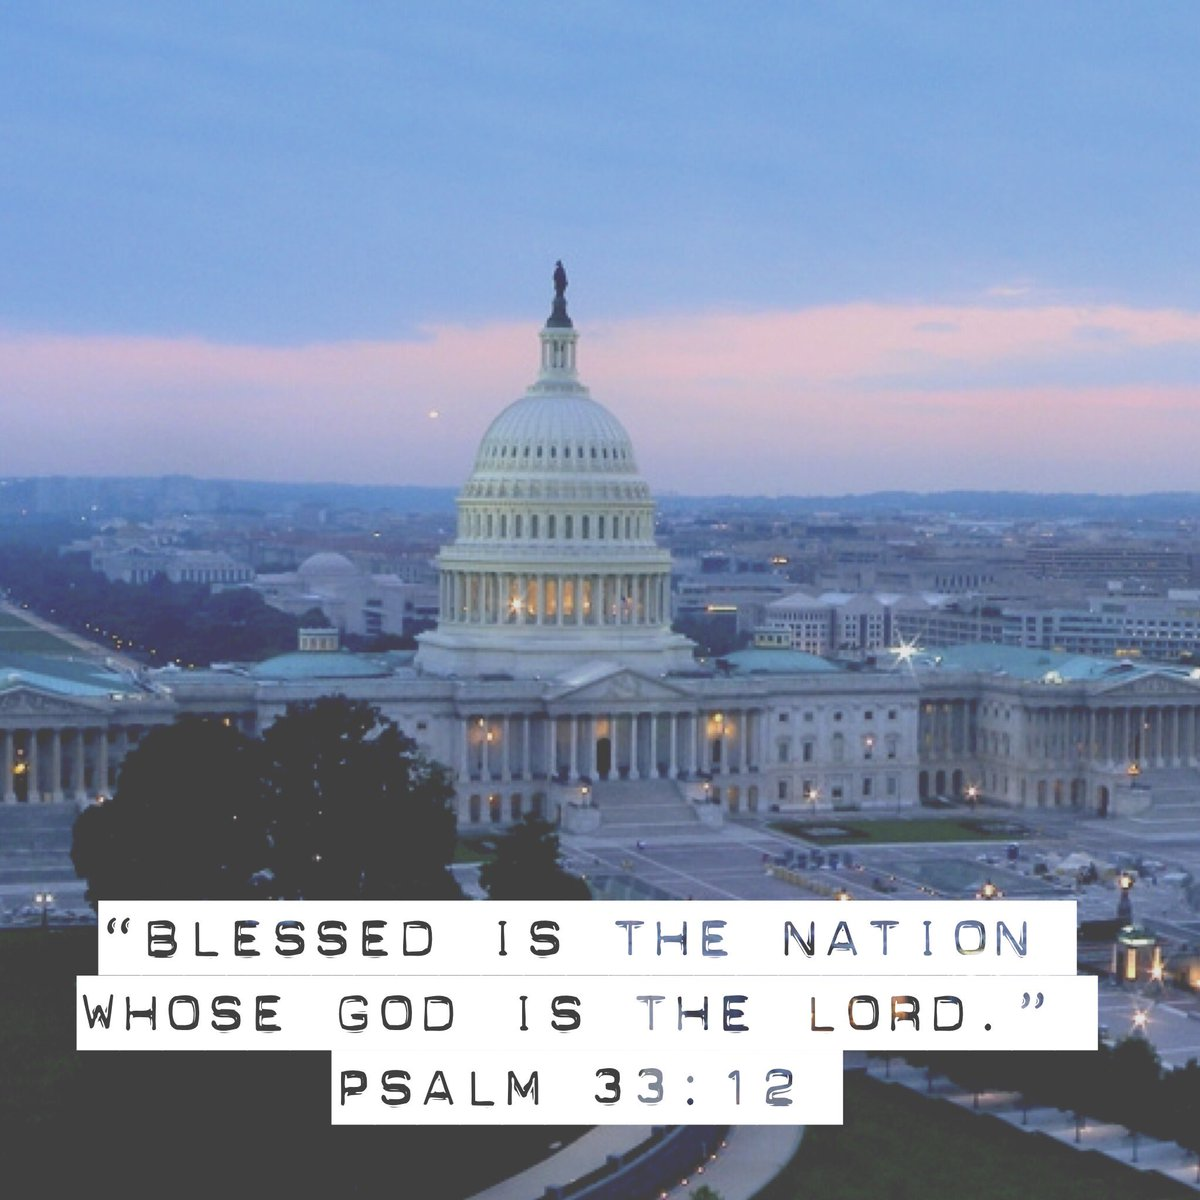 """Blessed is the nation whose God is the Lord."" Psalm 33:12 #inauguration https://t.co/OcqRi4p3ye"